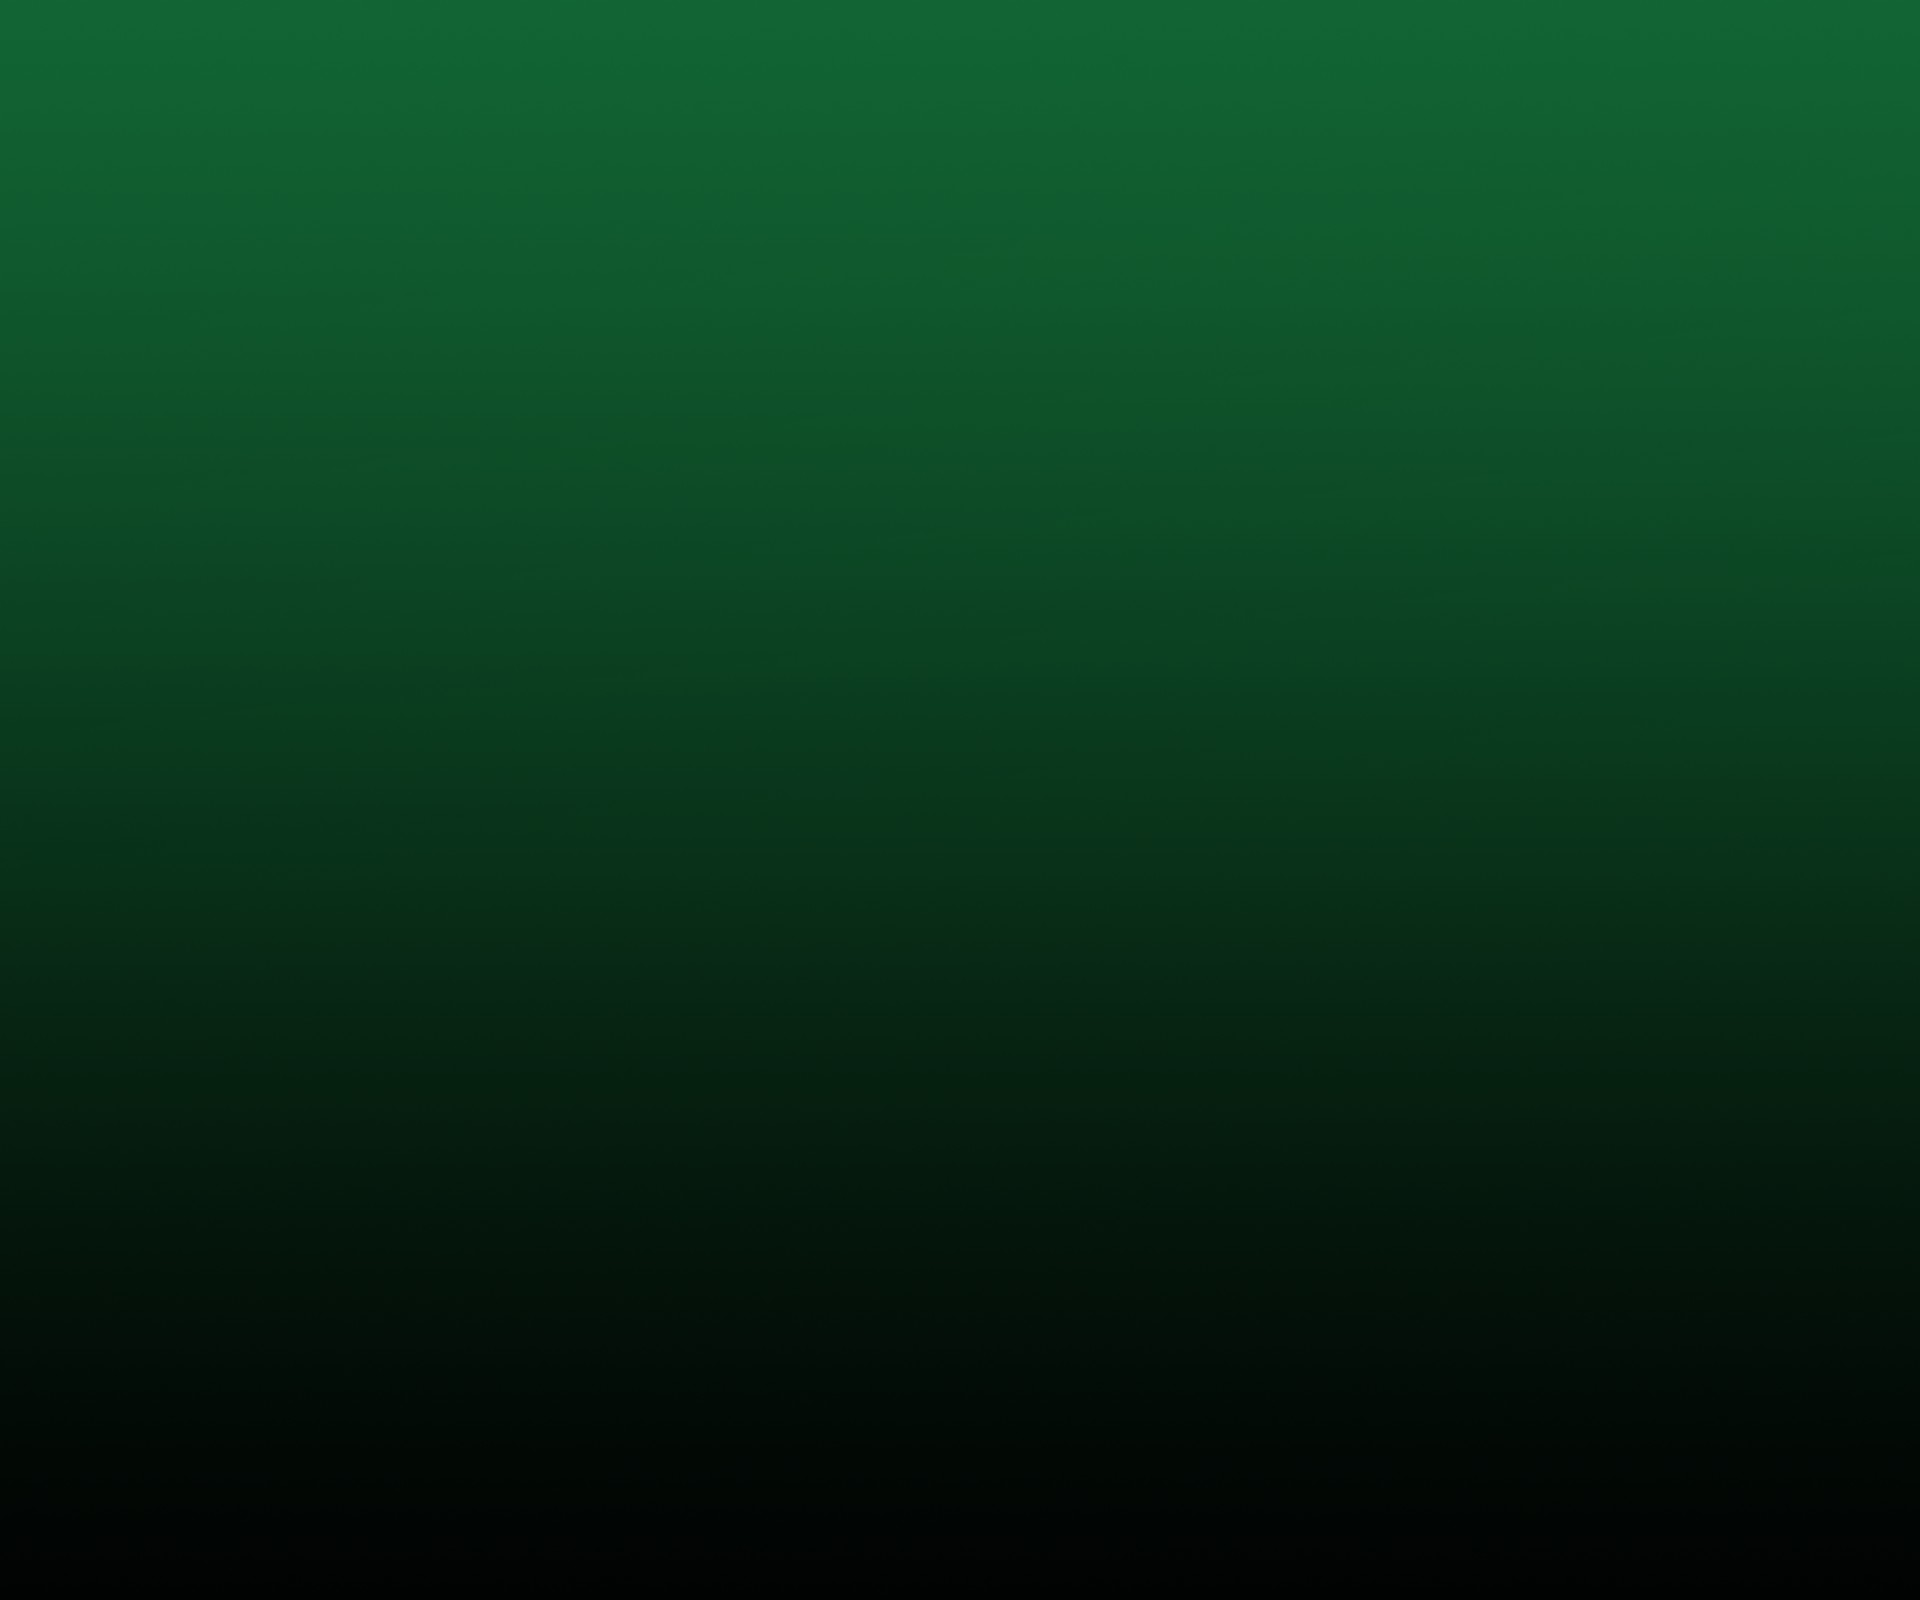 green gradient background 183�� download free stunning high